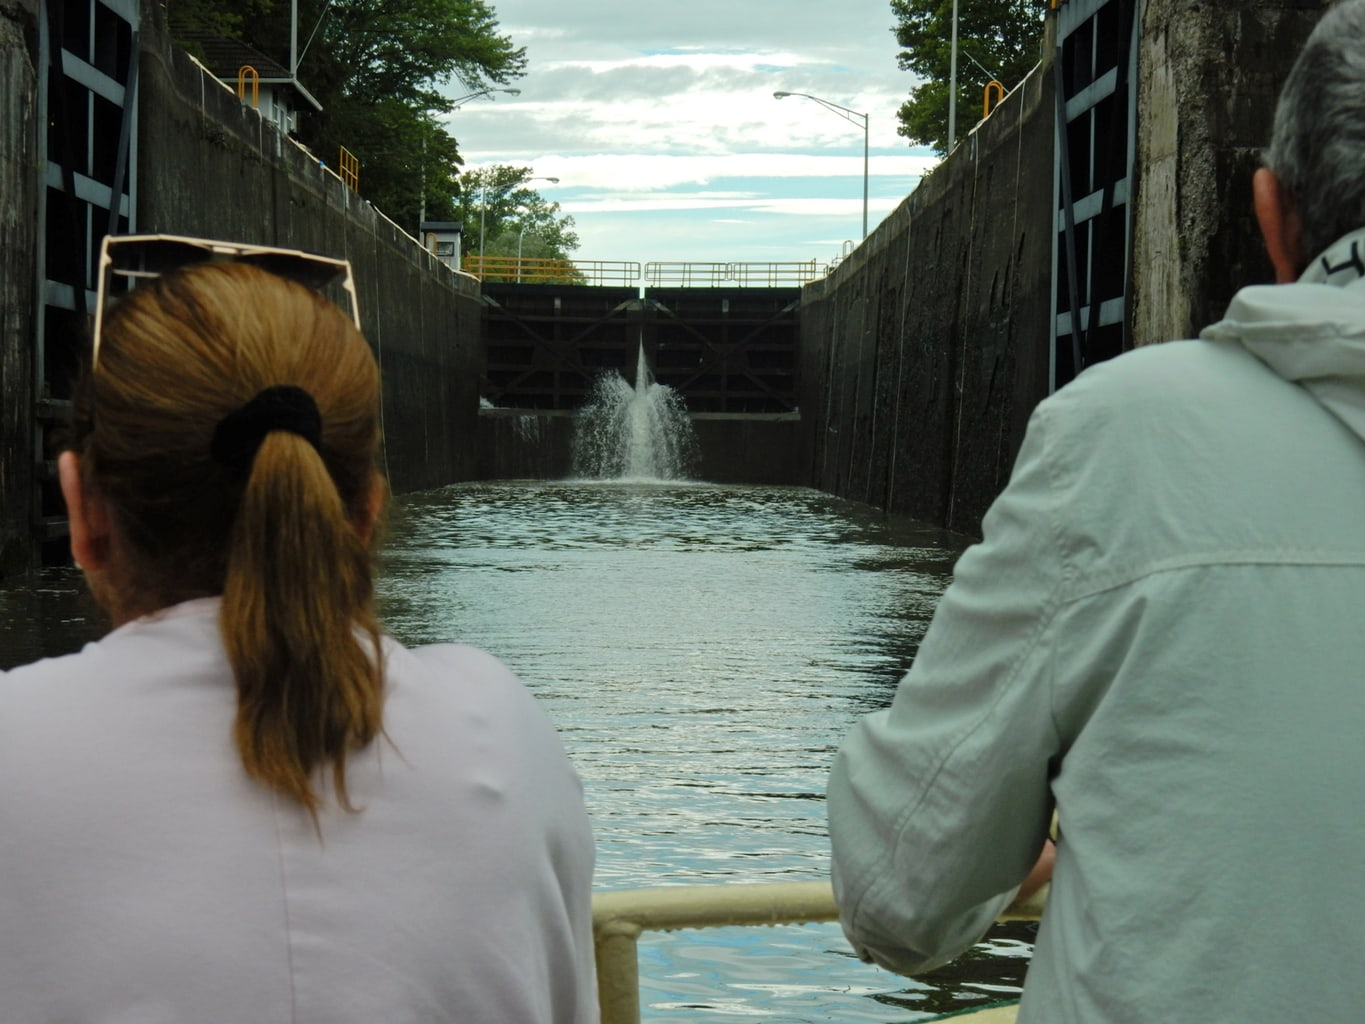 Entering Erie Canal Lock on Sam Patch Boat Pittsford NY